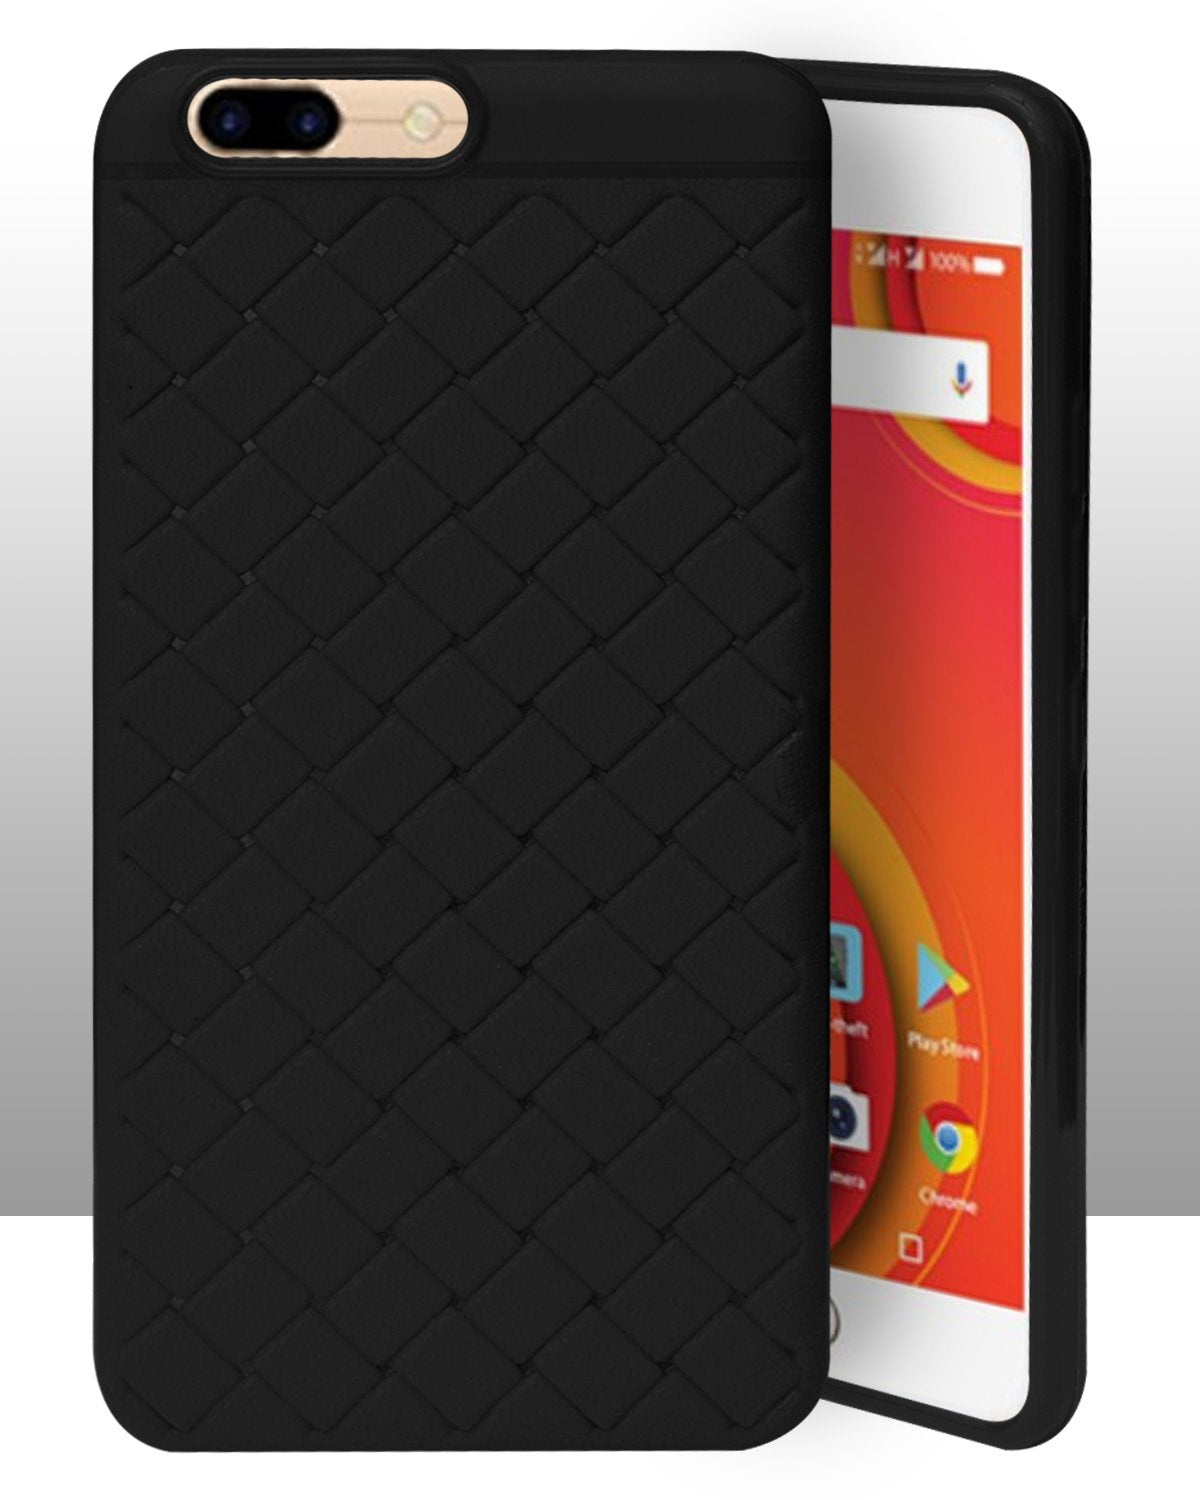 Comio S1 Texture Leather Pattern Soft Cusion Padding Case Back Cover - Black